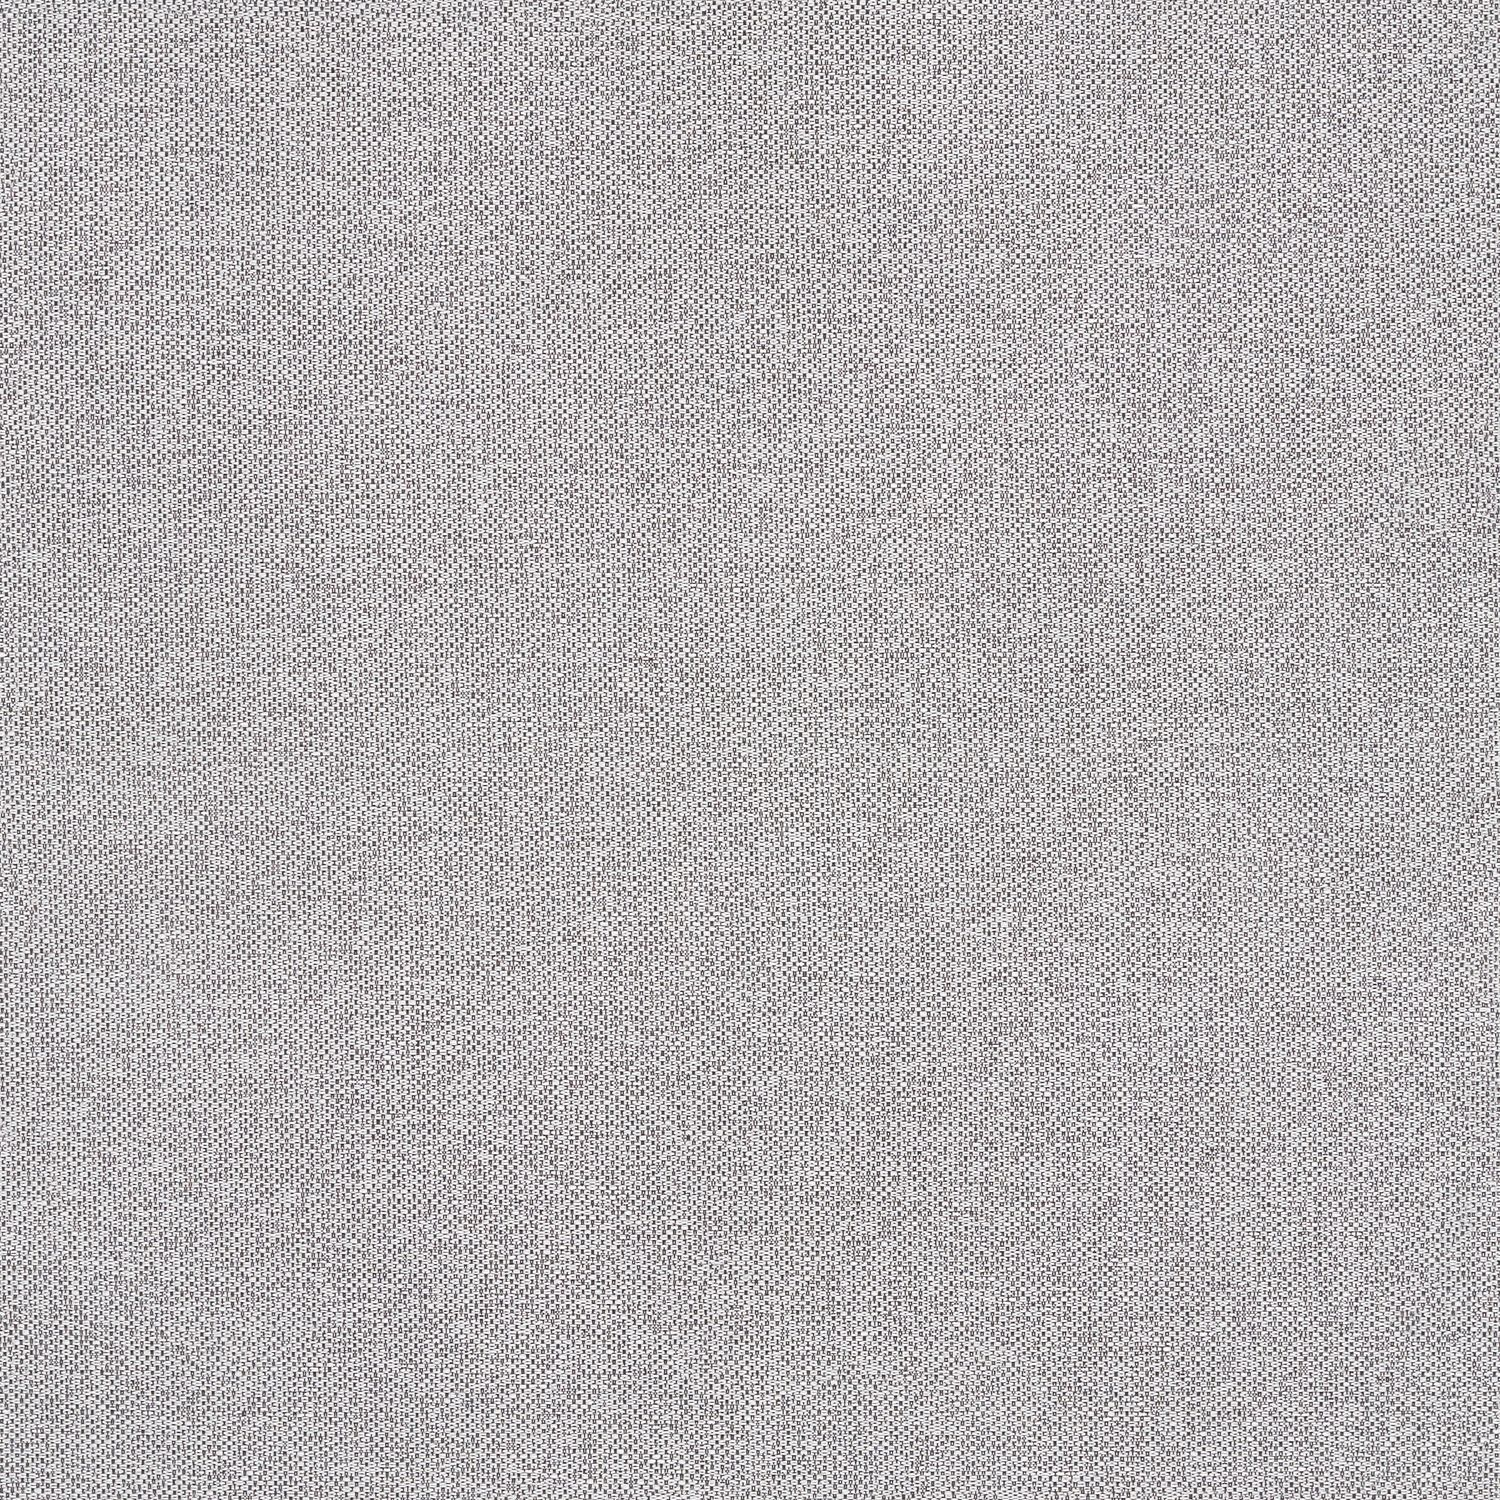 Fleck Forge - Carbide - 7016 - 05 - Half Yard Tileable Swatches